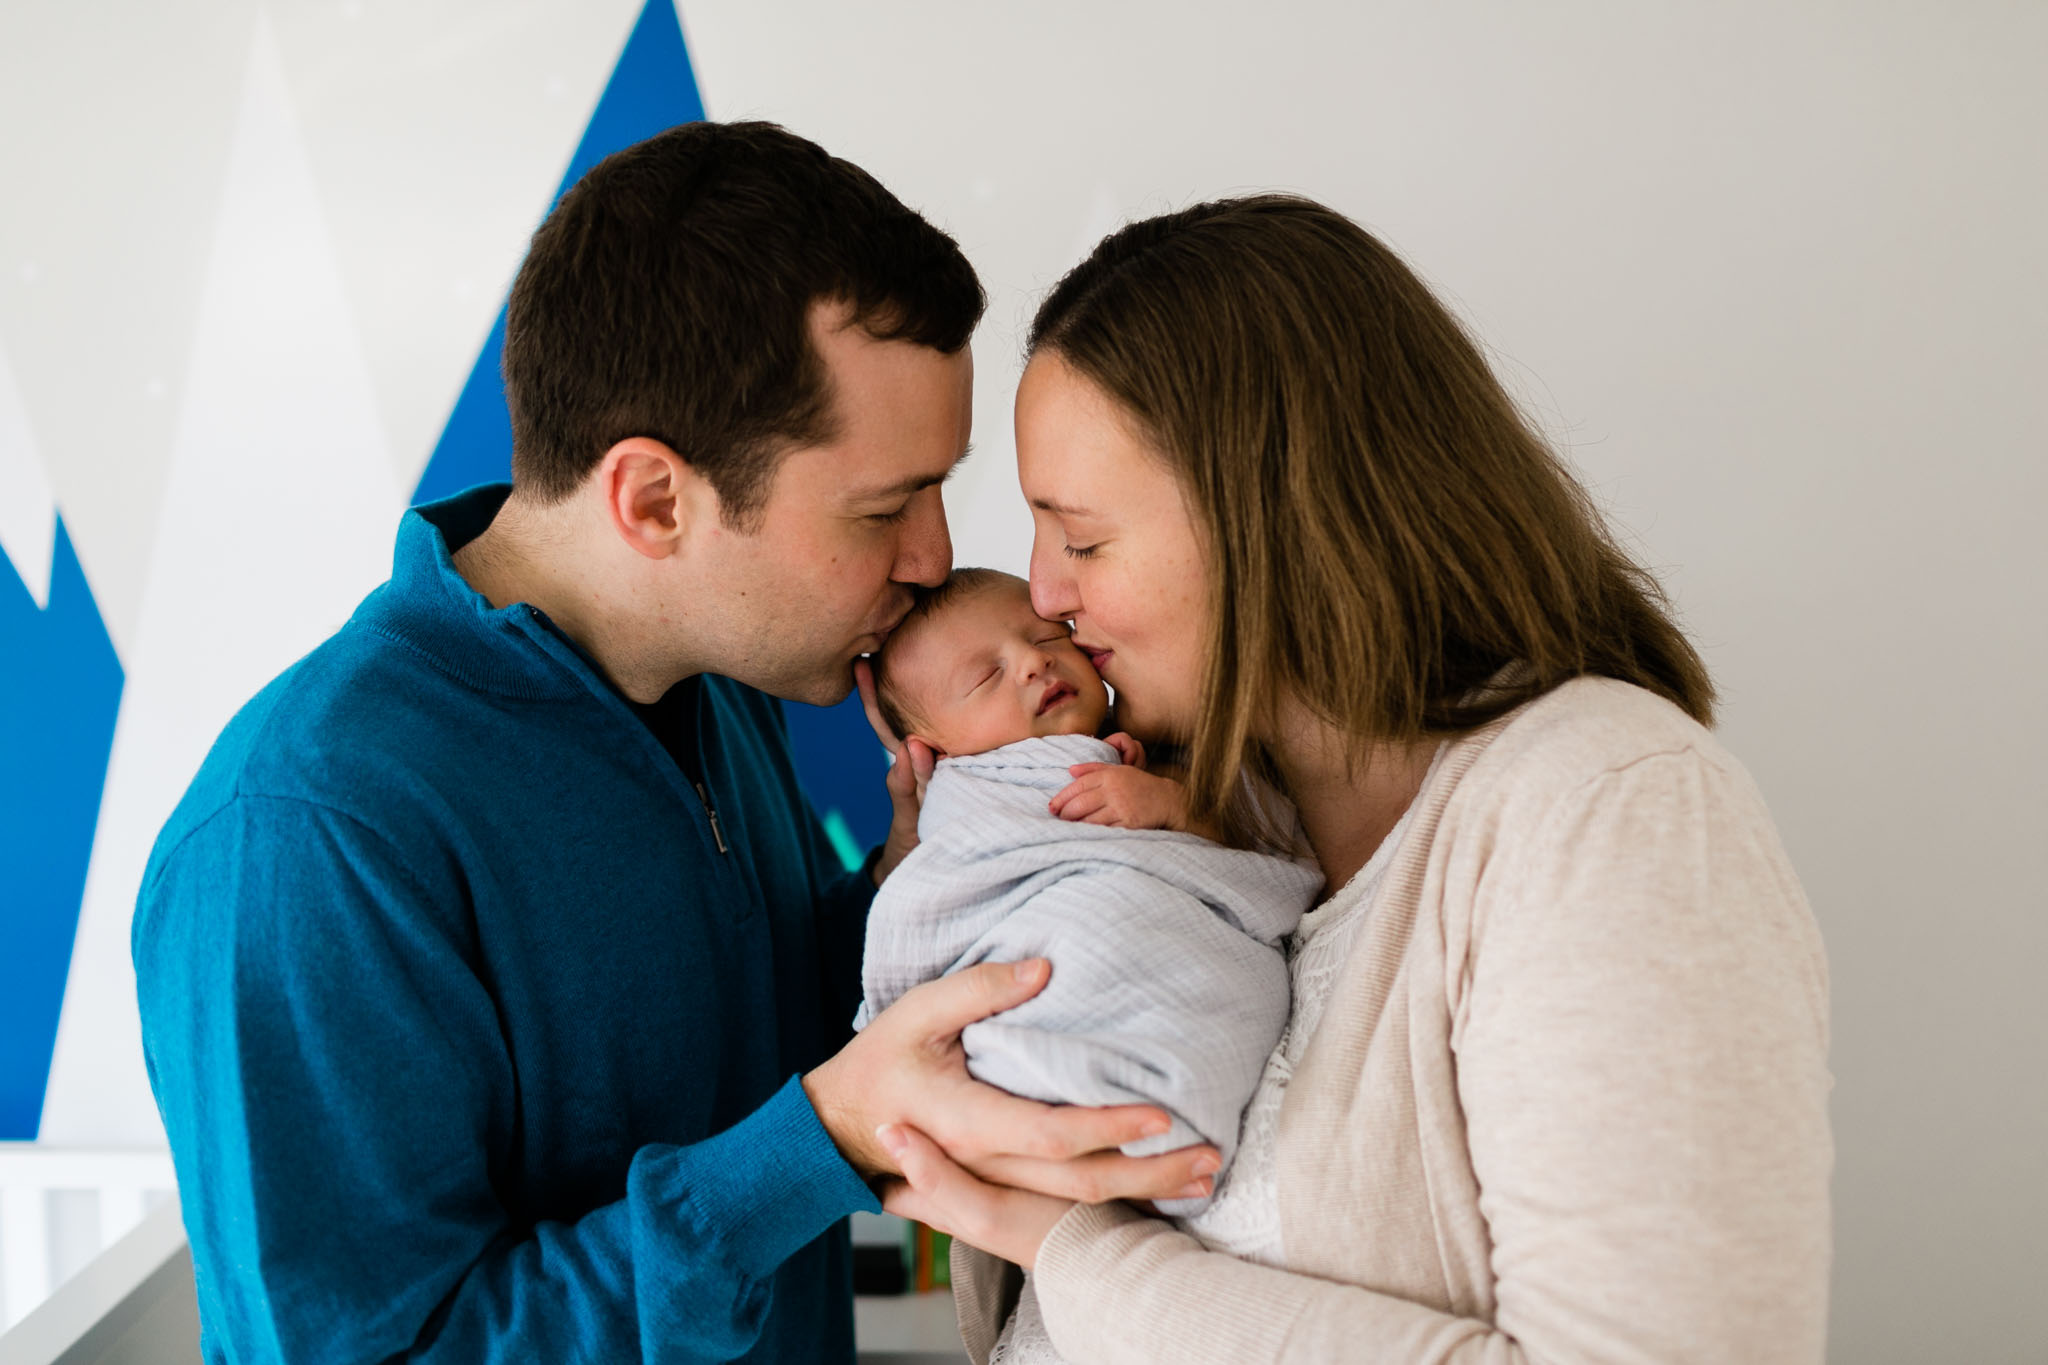 Parents kissing baby on face | Newborn Photographer in Raleigh NC | By G. Lin Photography